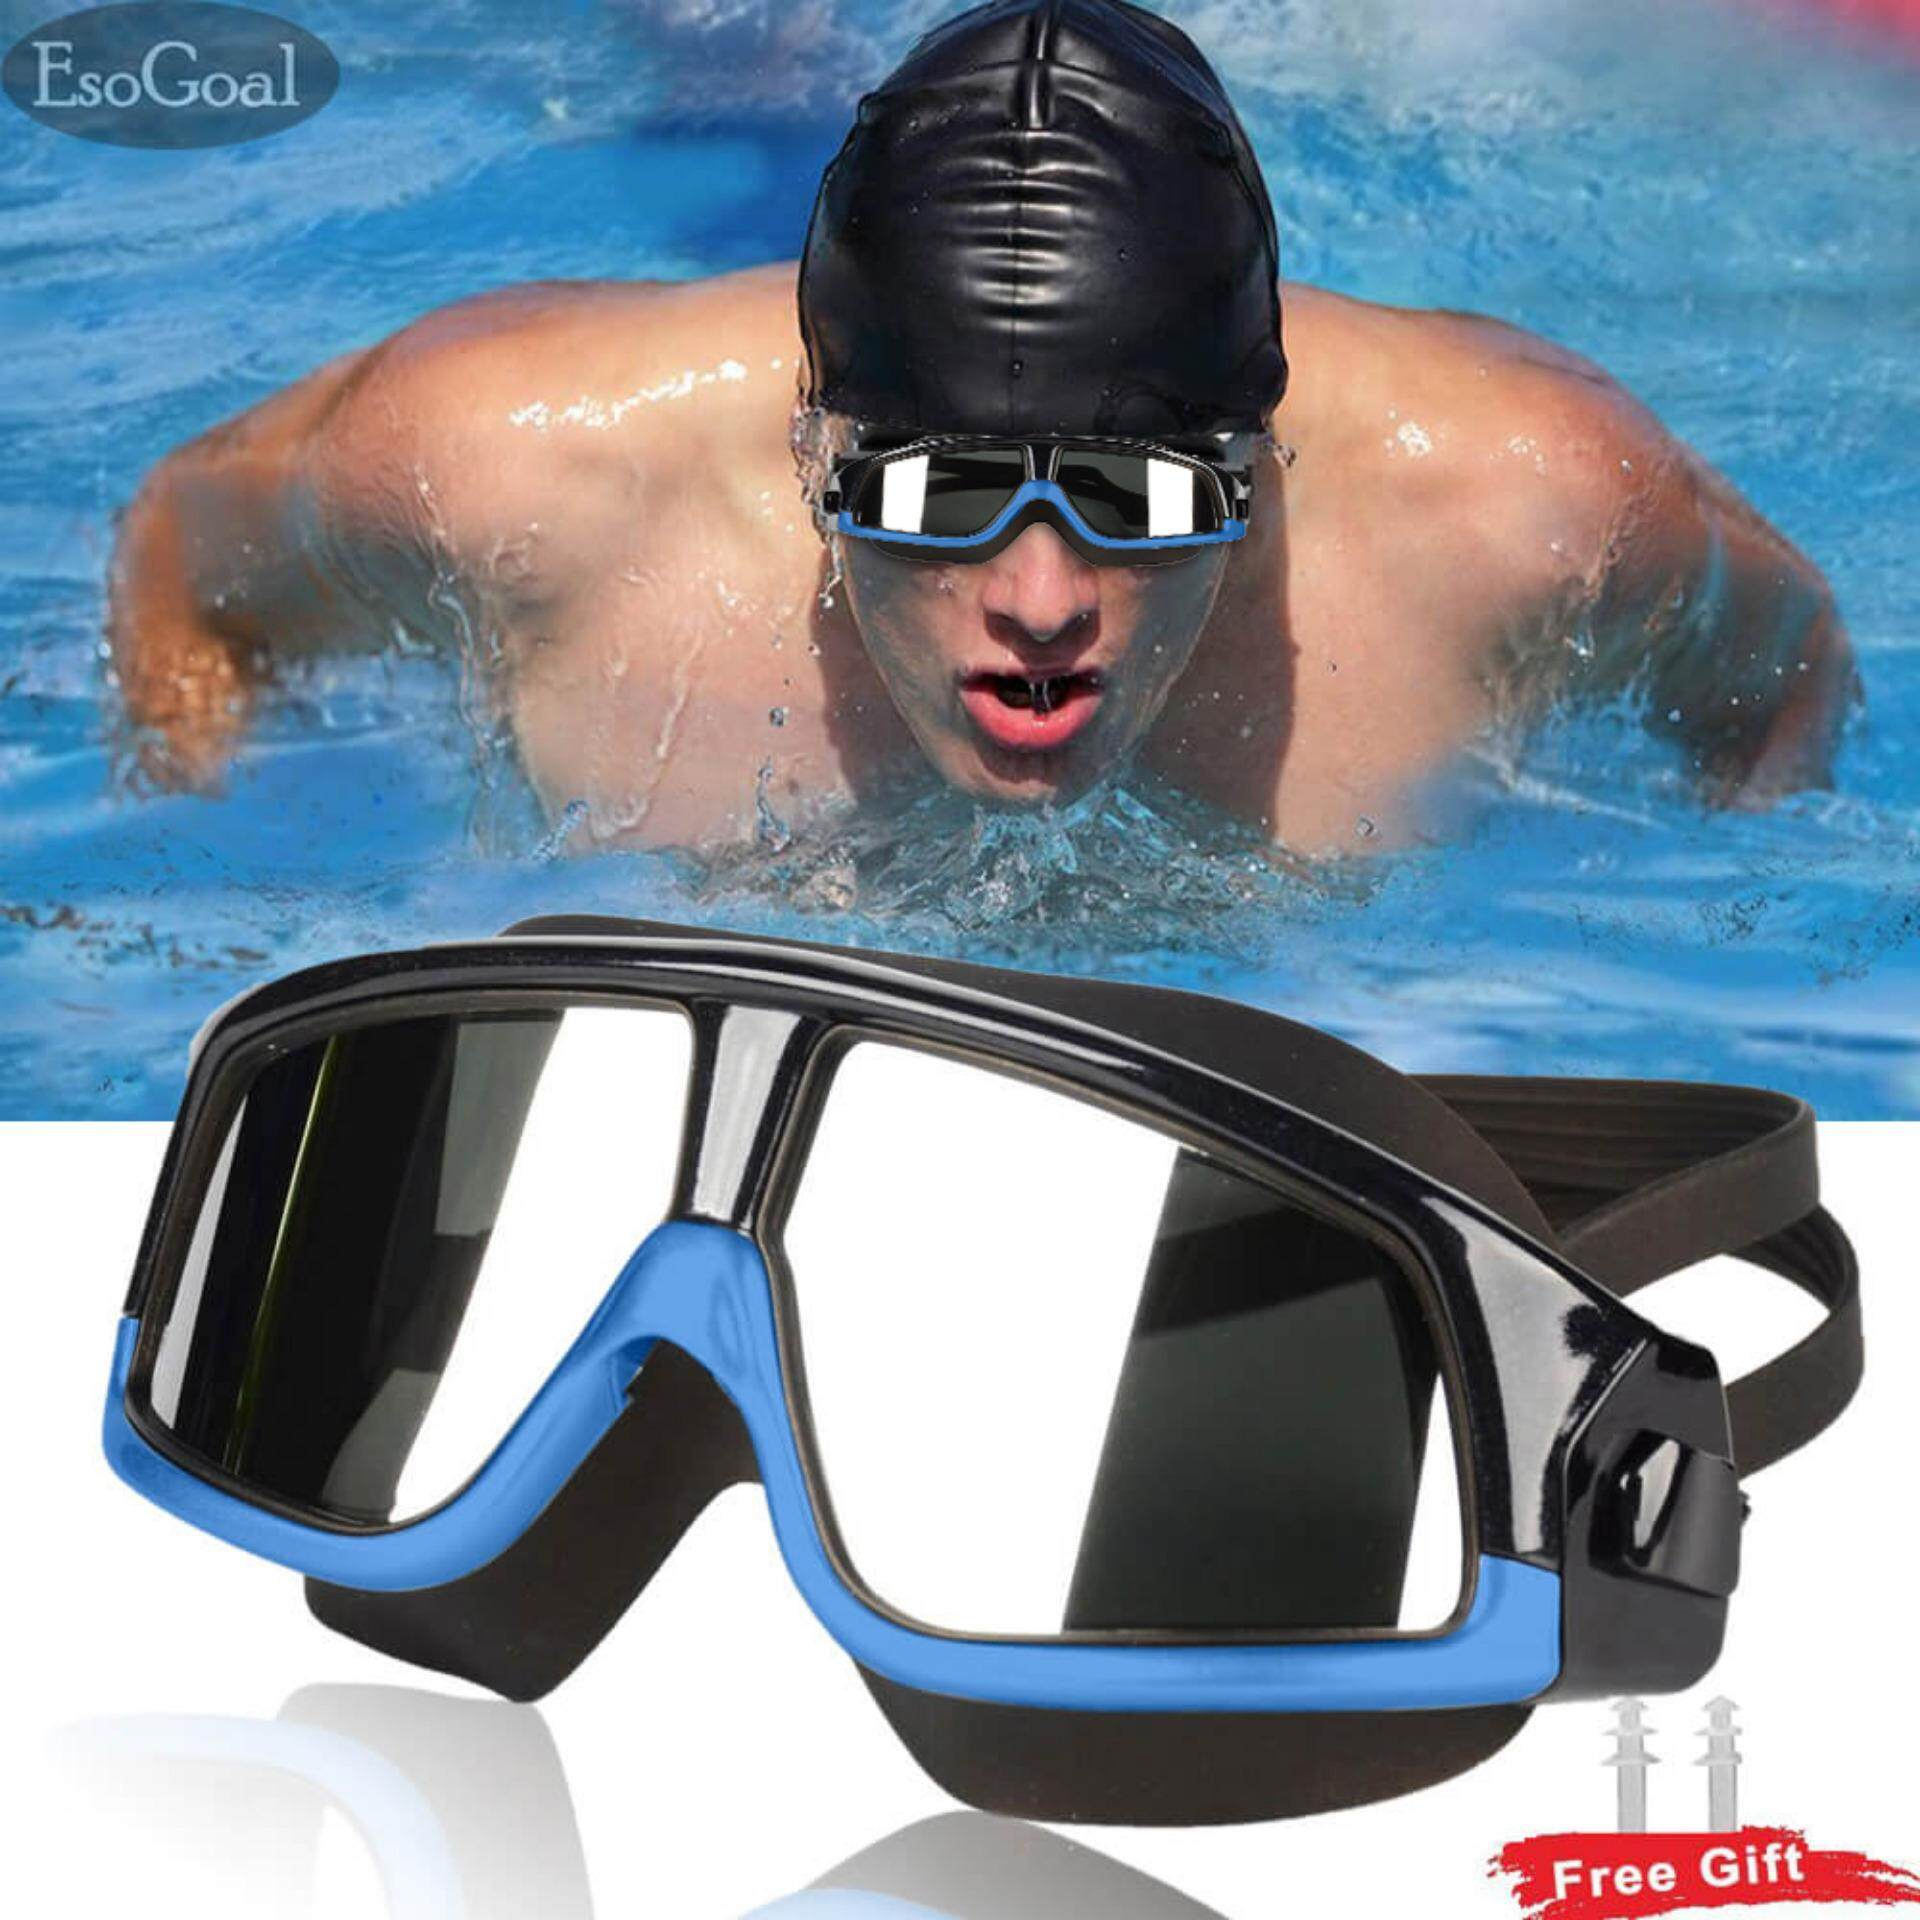 Esogoal Swimming Goggles, Premium Polarized Big Frame Competition Swim Goggles Clear Lens Wide-Vision Swimming Goggles No Leaking With Uv And Anti Fog Protection For Men Women Adult Youth With Free Case, Ear Plugs